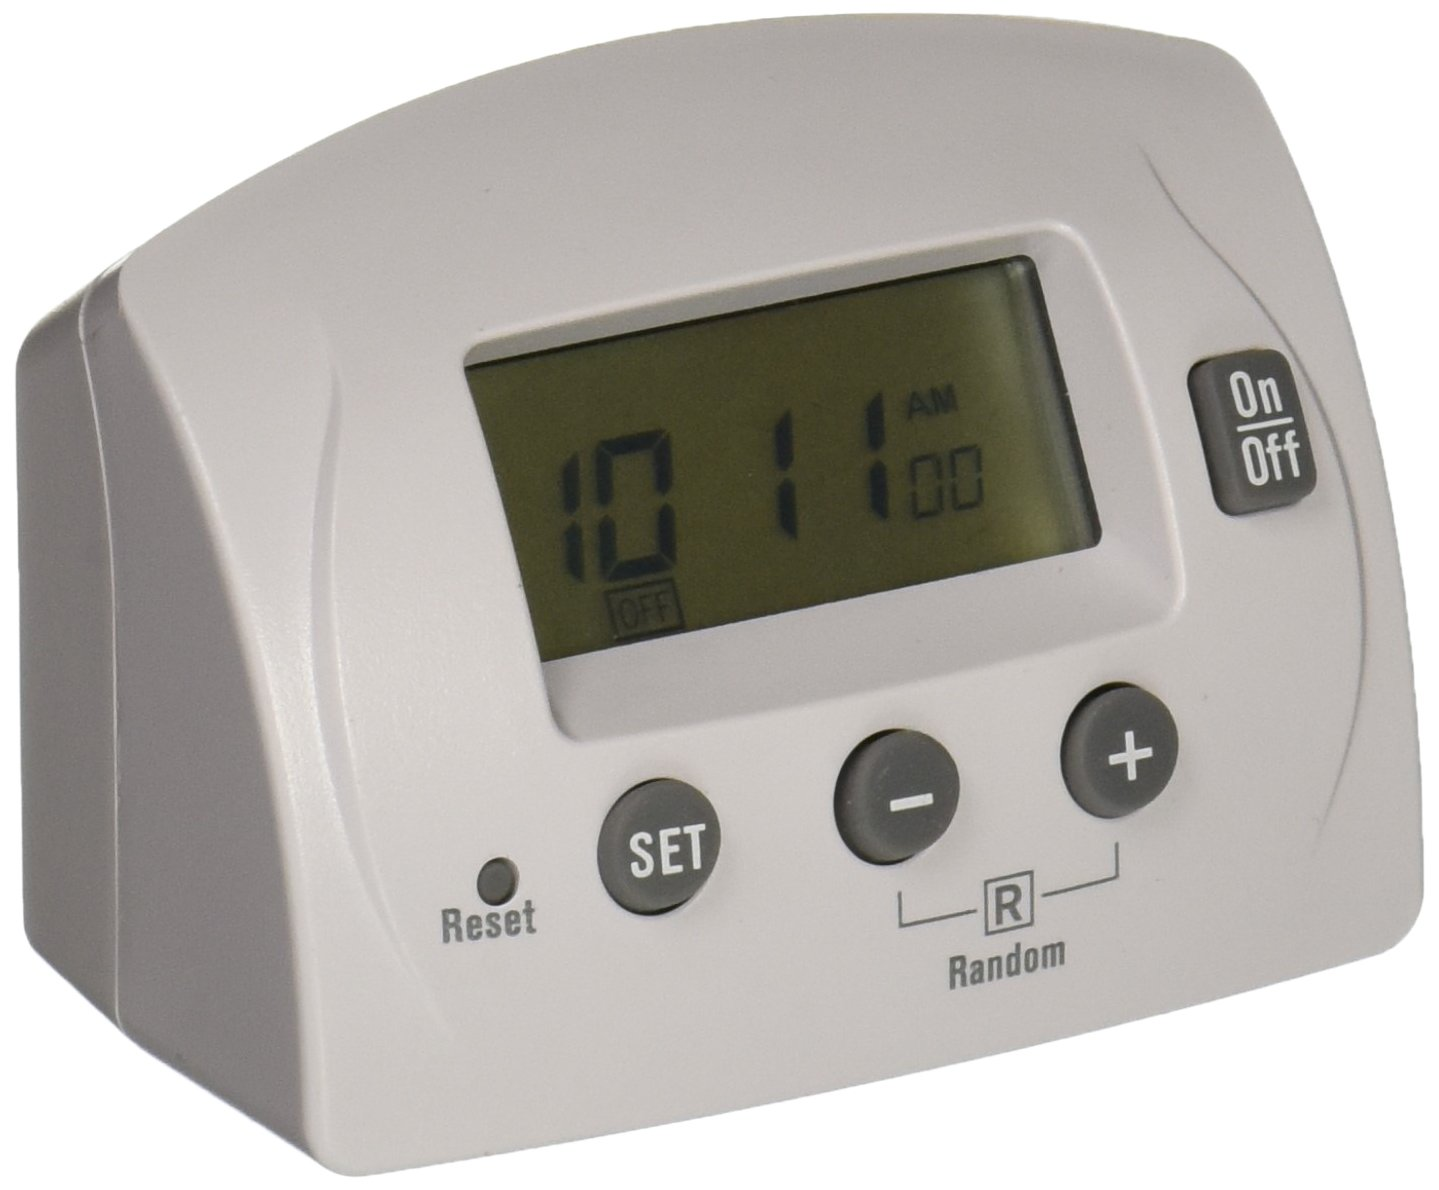 Power Zone Tnid7111 One Outlet 7 Day 4 Program Indoor Digital Timer Plug 2wire Polarized Rona Electrical Timers